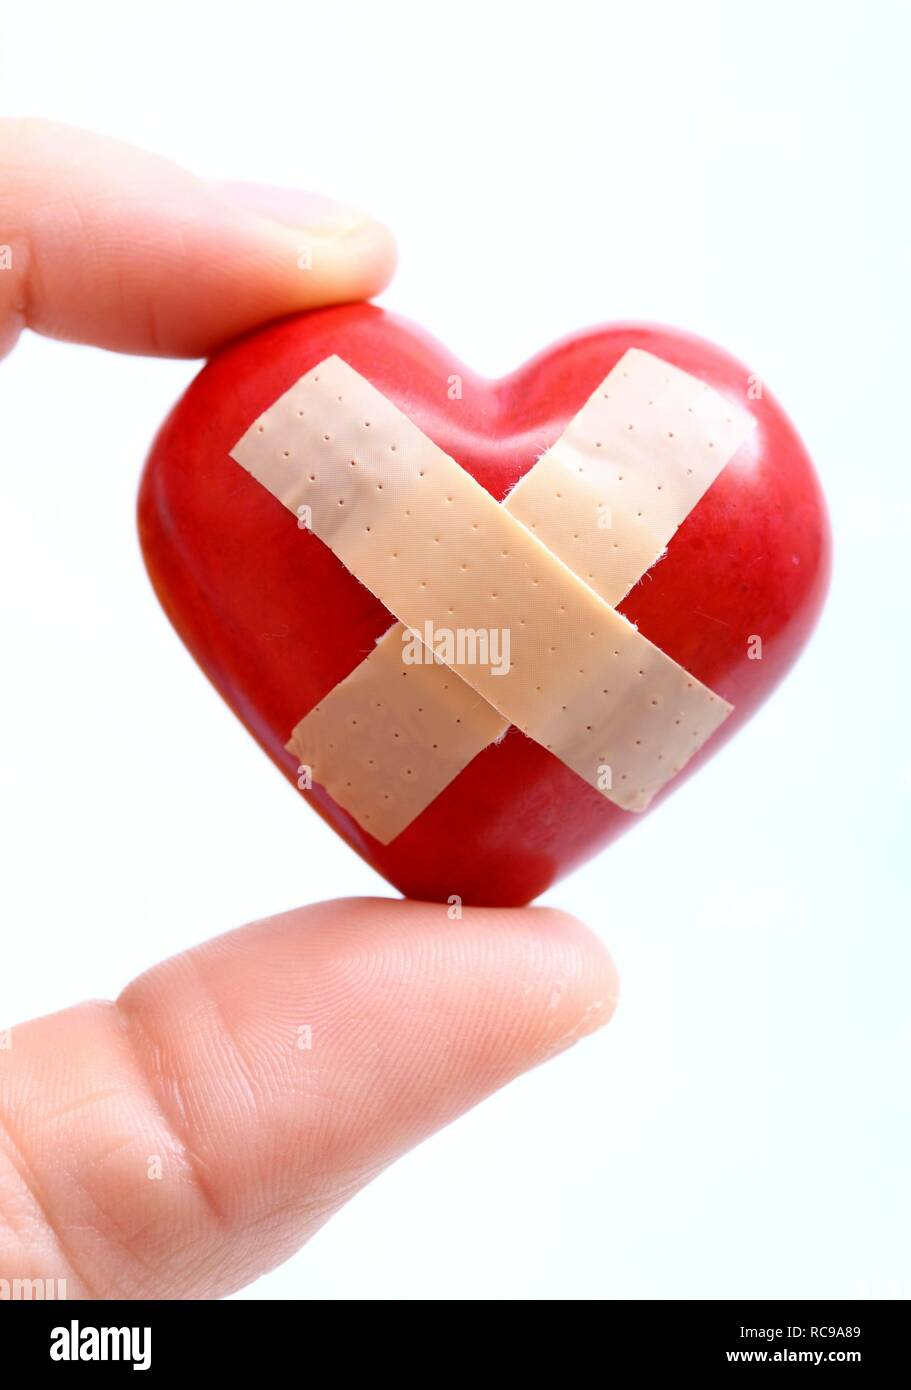 Hand holding a red heart with a plaster, symbolic image for heart disease, heart attack, a diseased heart - Stock Image